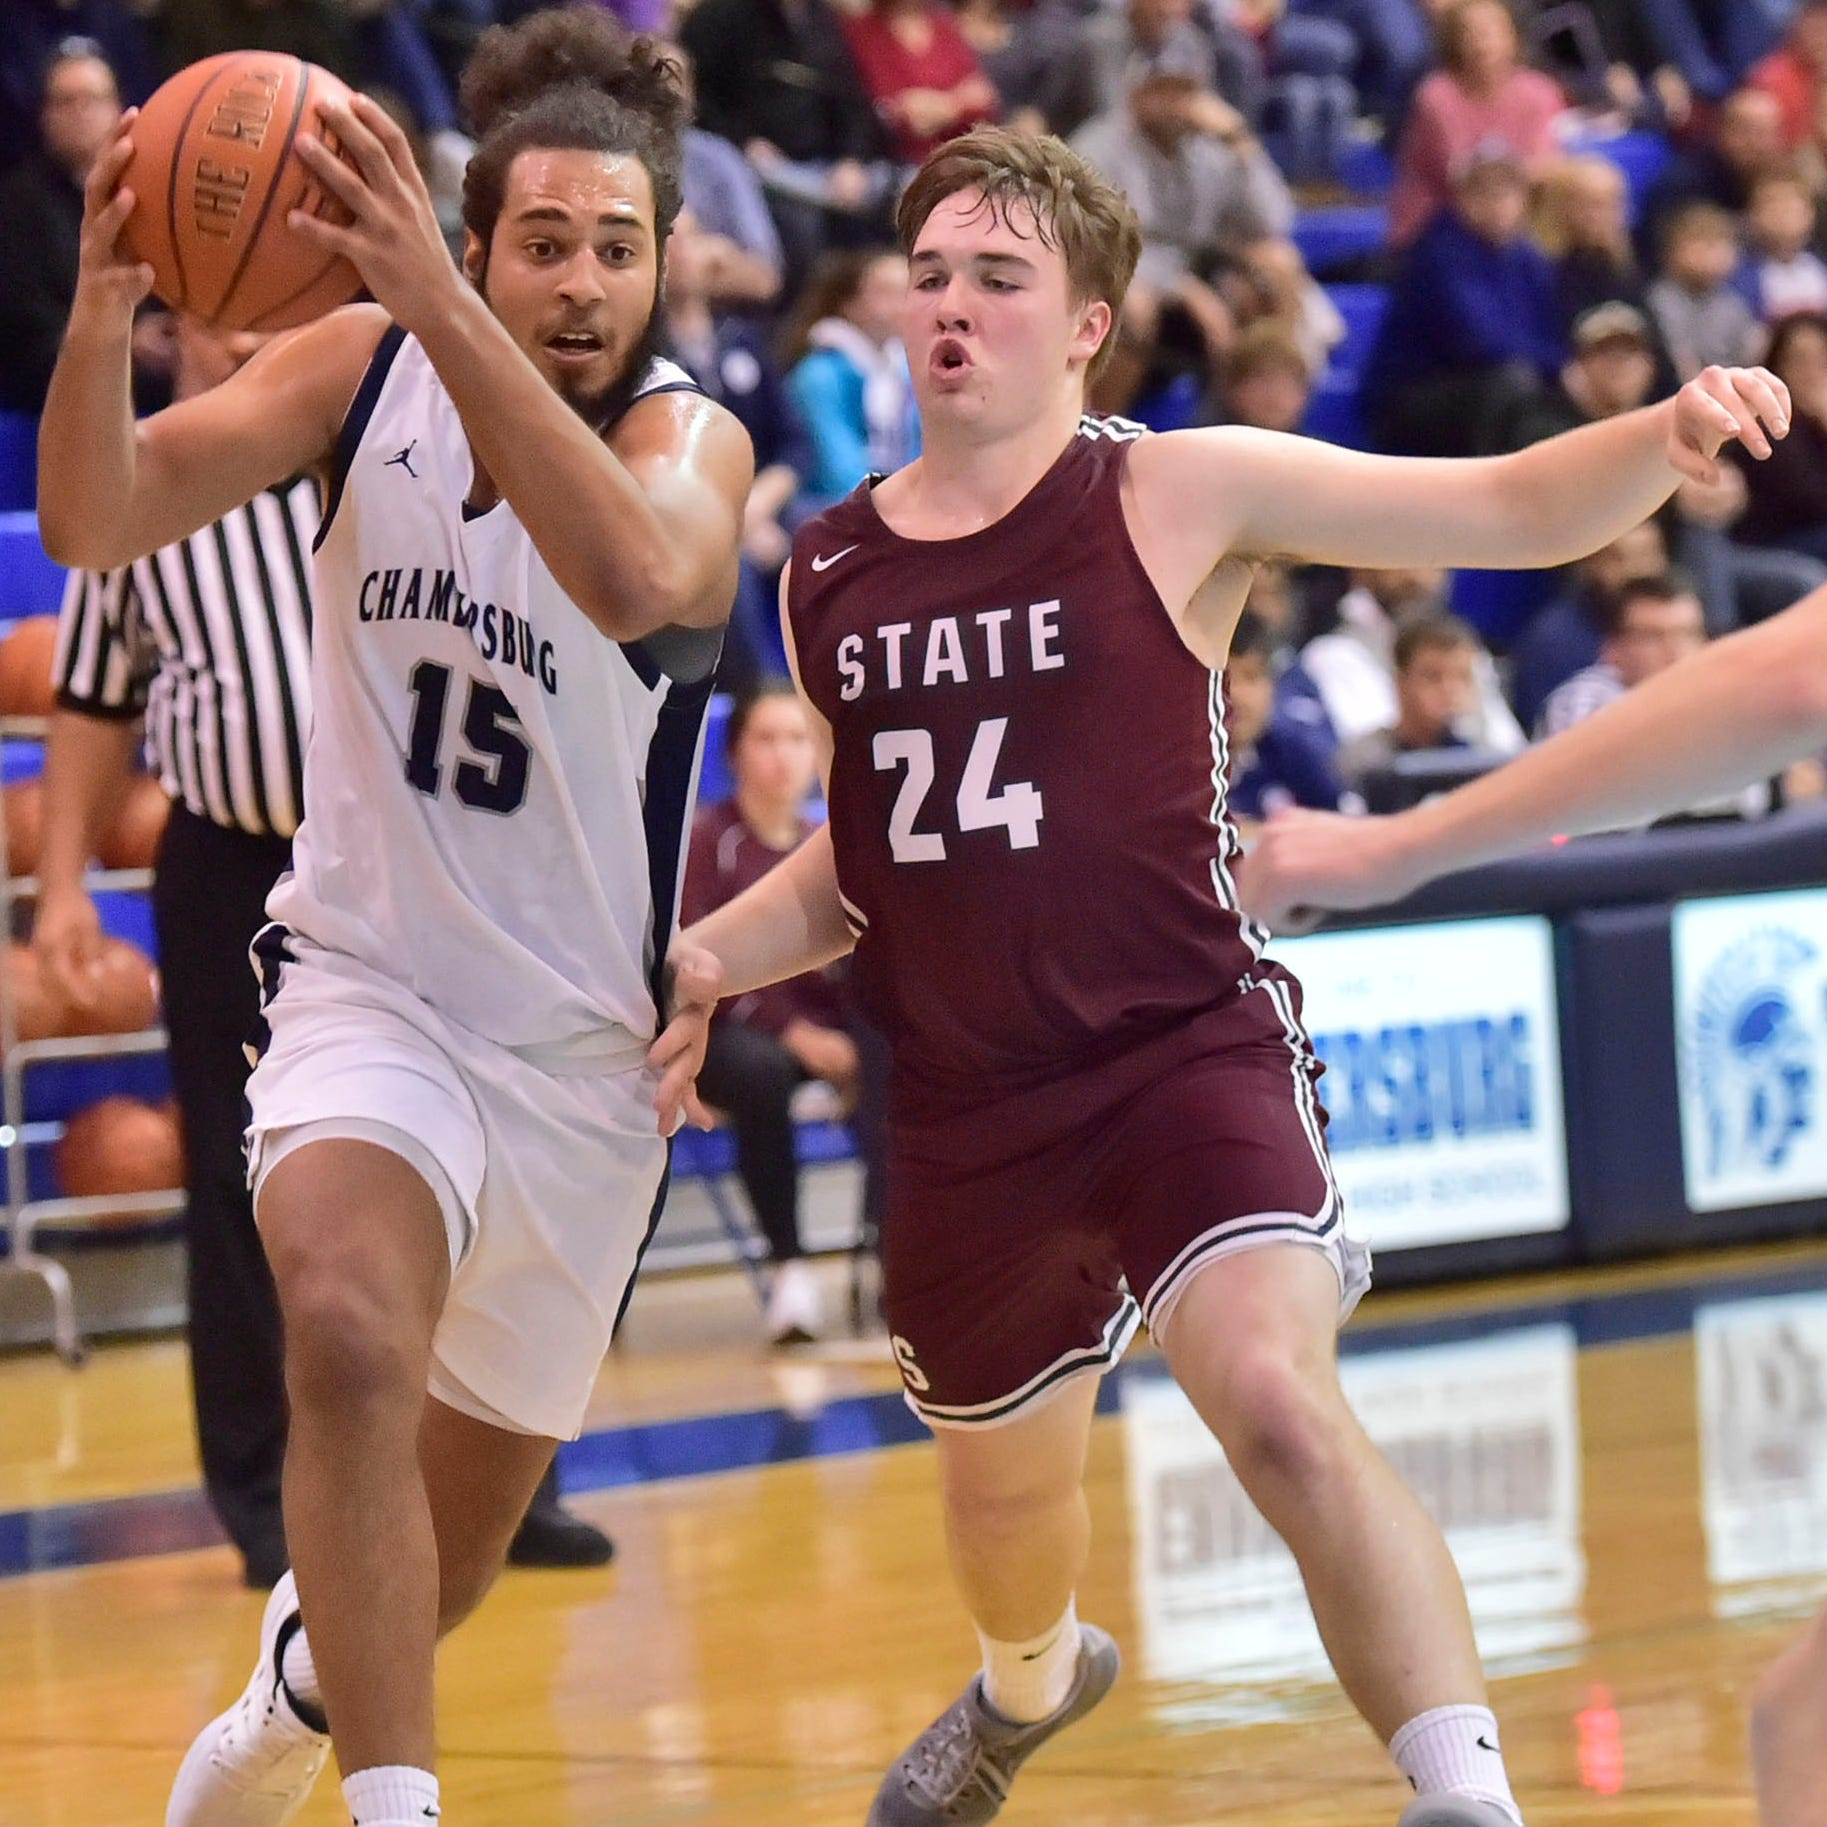 Loss at buzzer to State College hands Chambersburg second loss